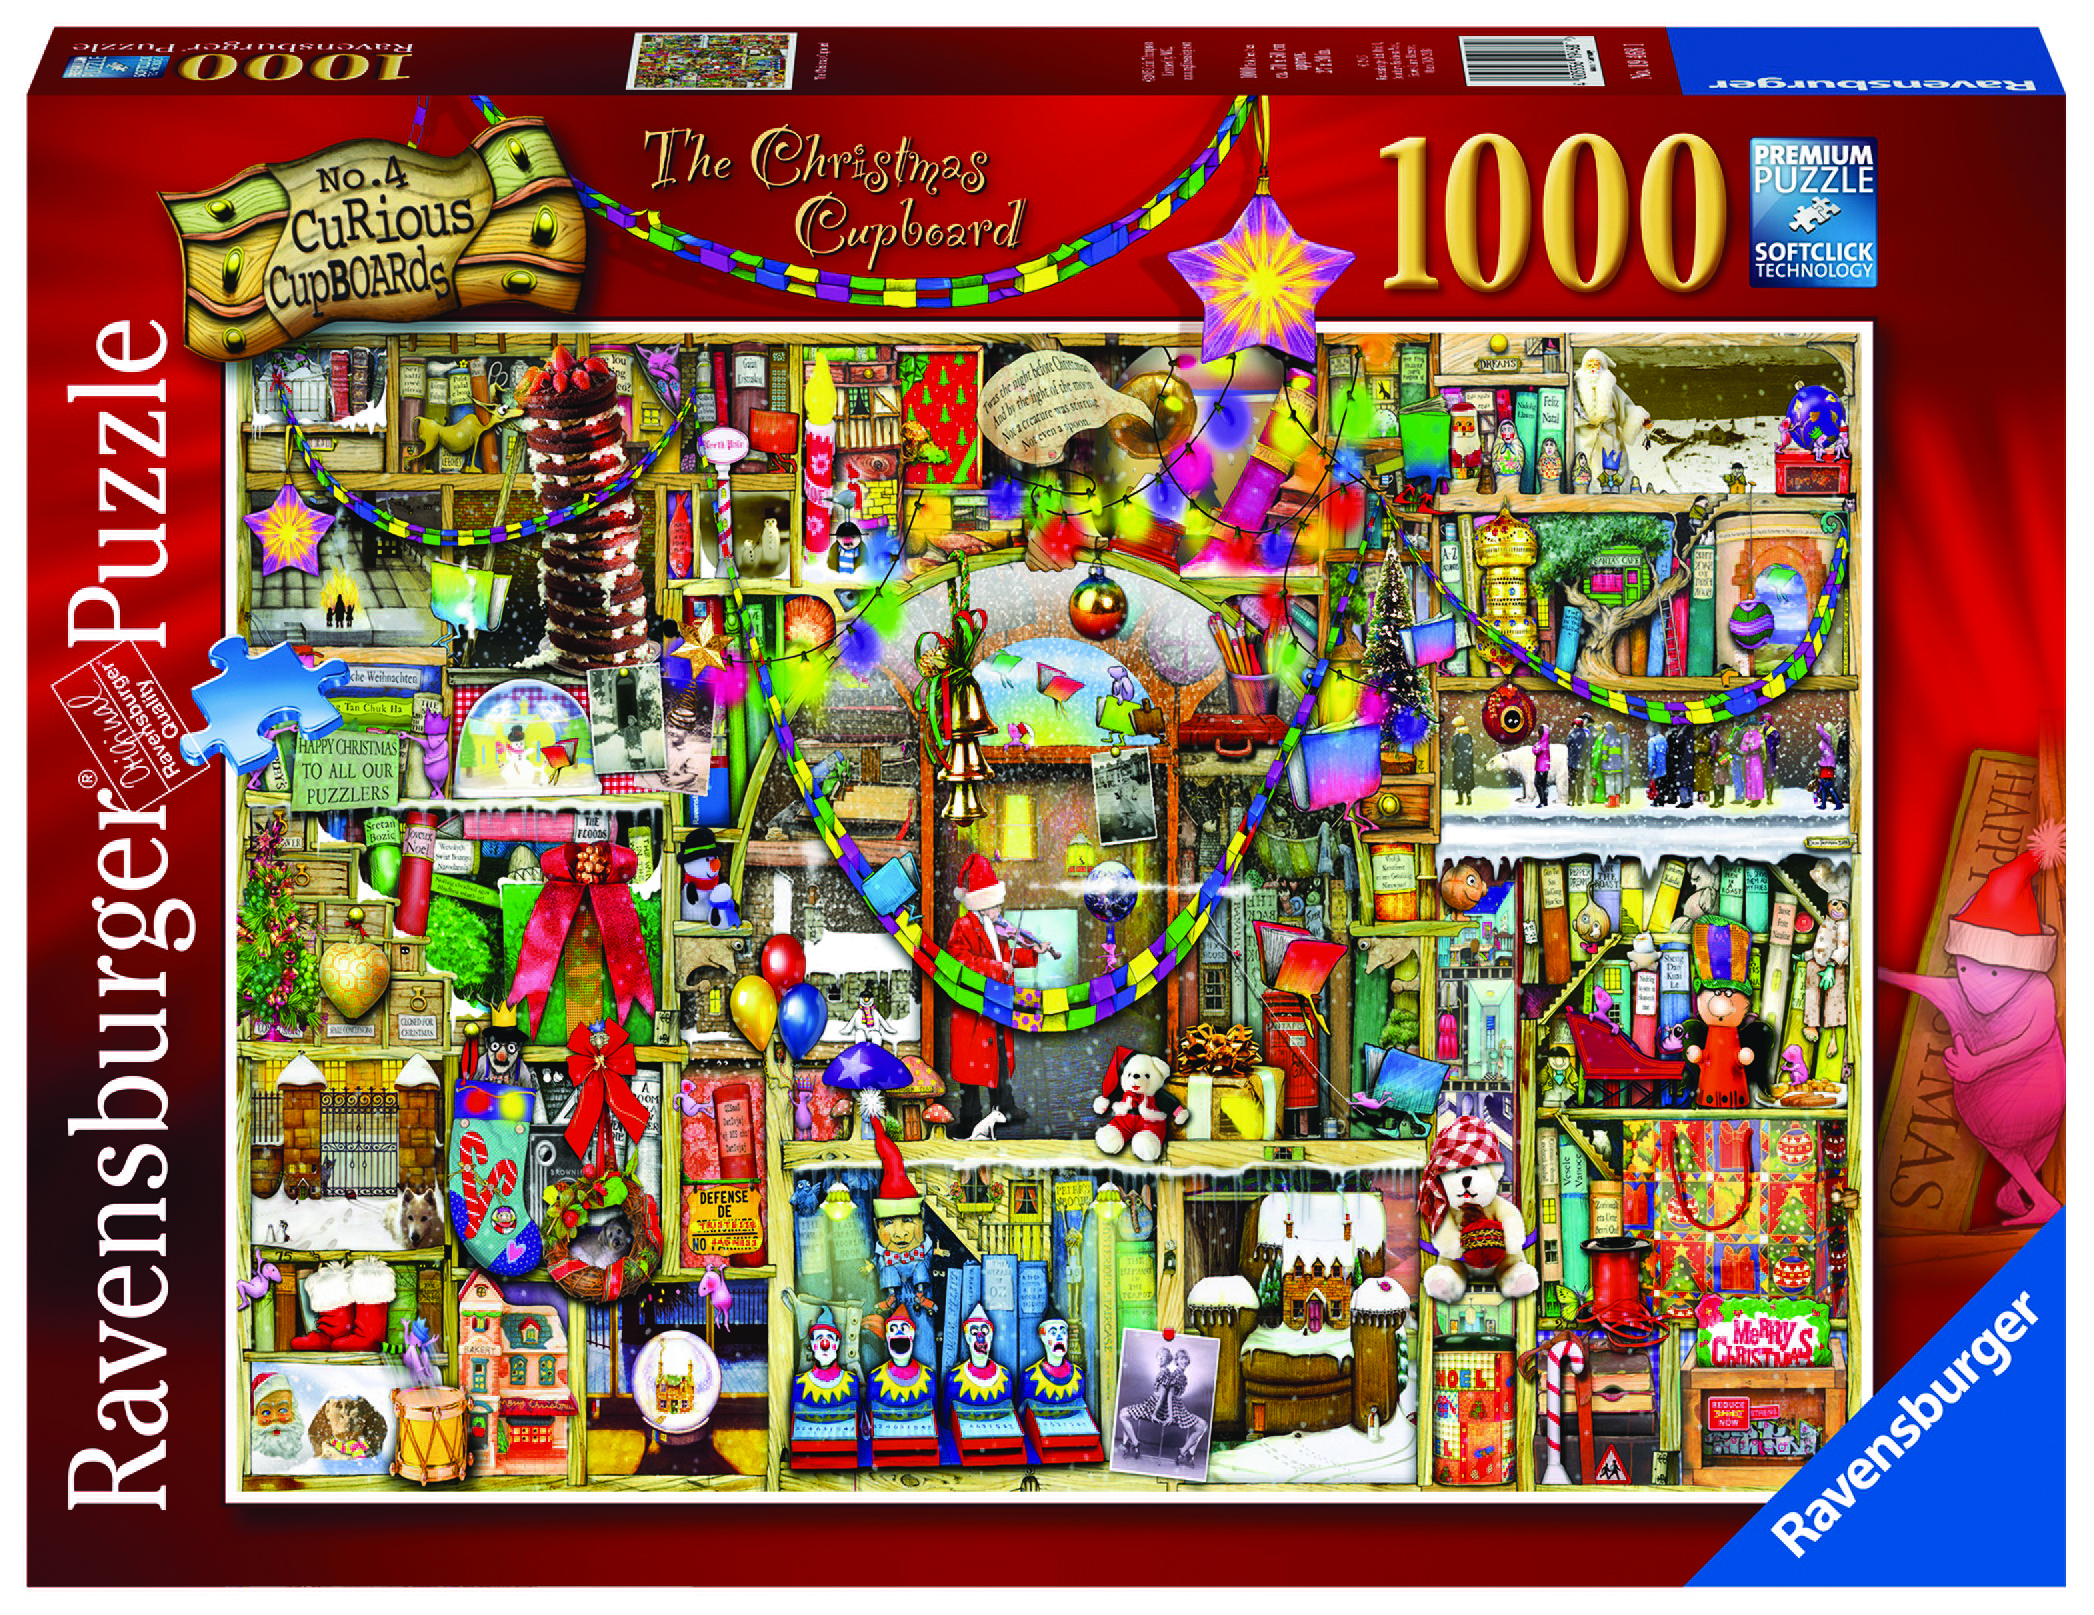 Ravensburger Colin Thompson - The Christmas Cupboard Jigsaw Puzzle 1000pc